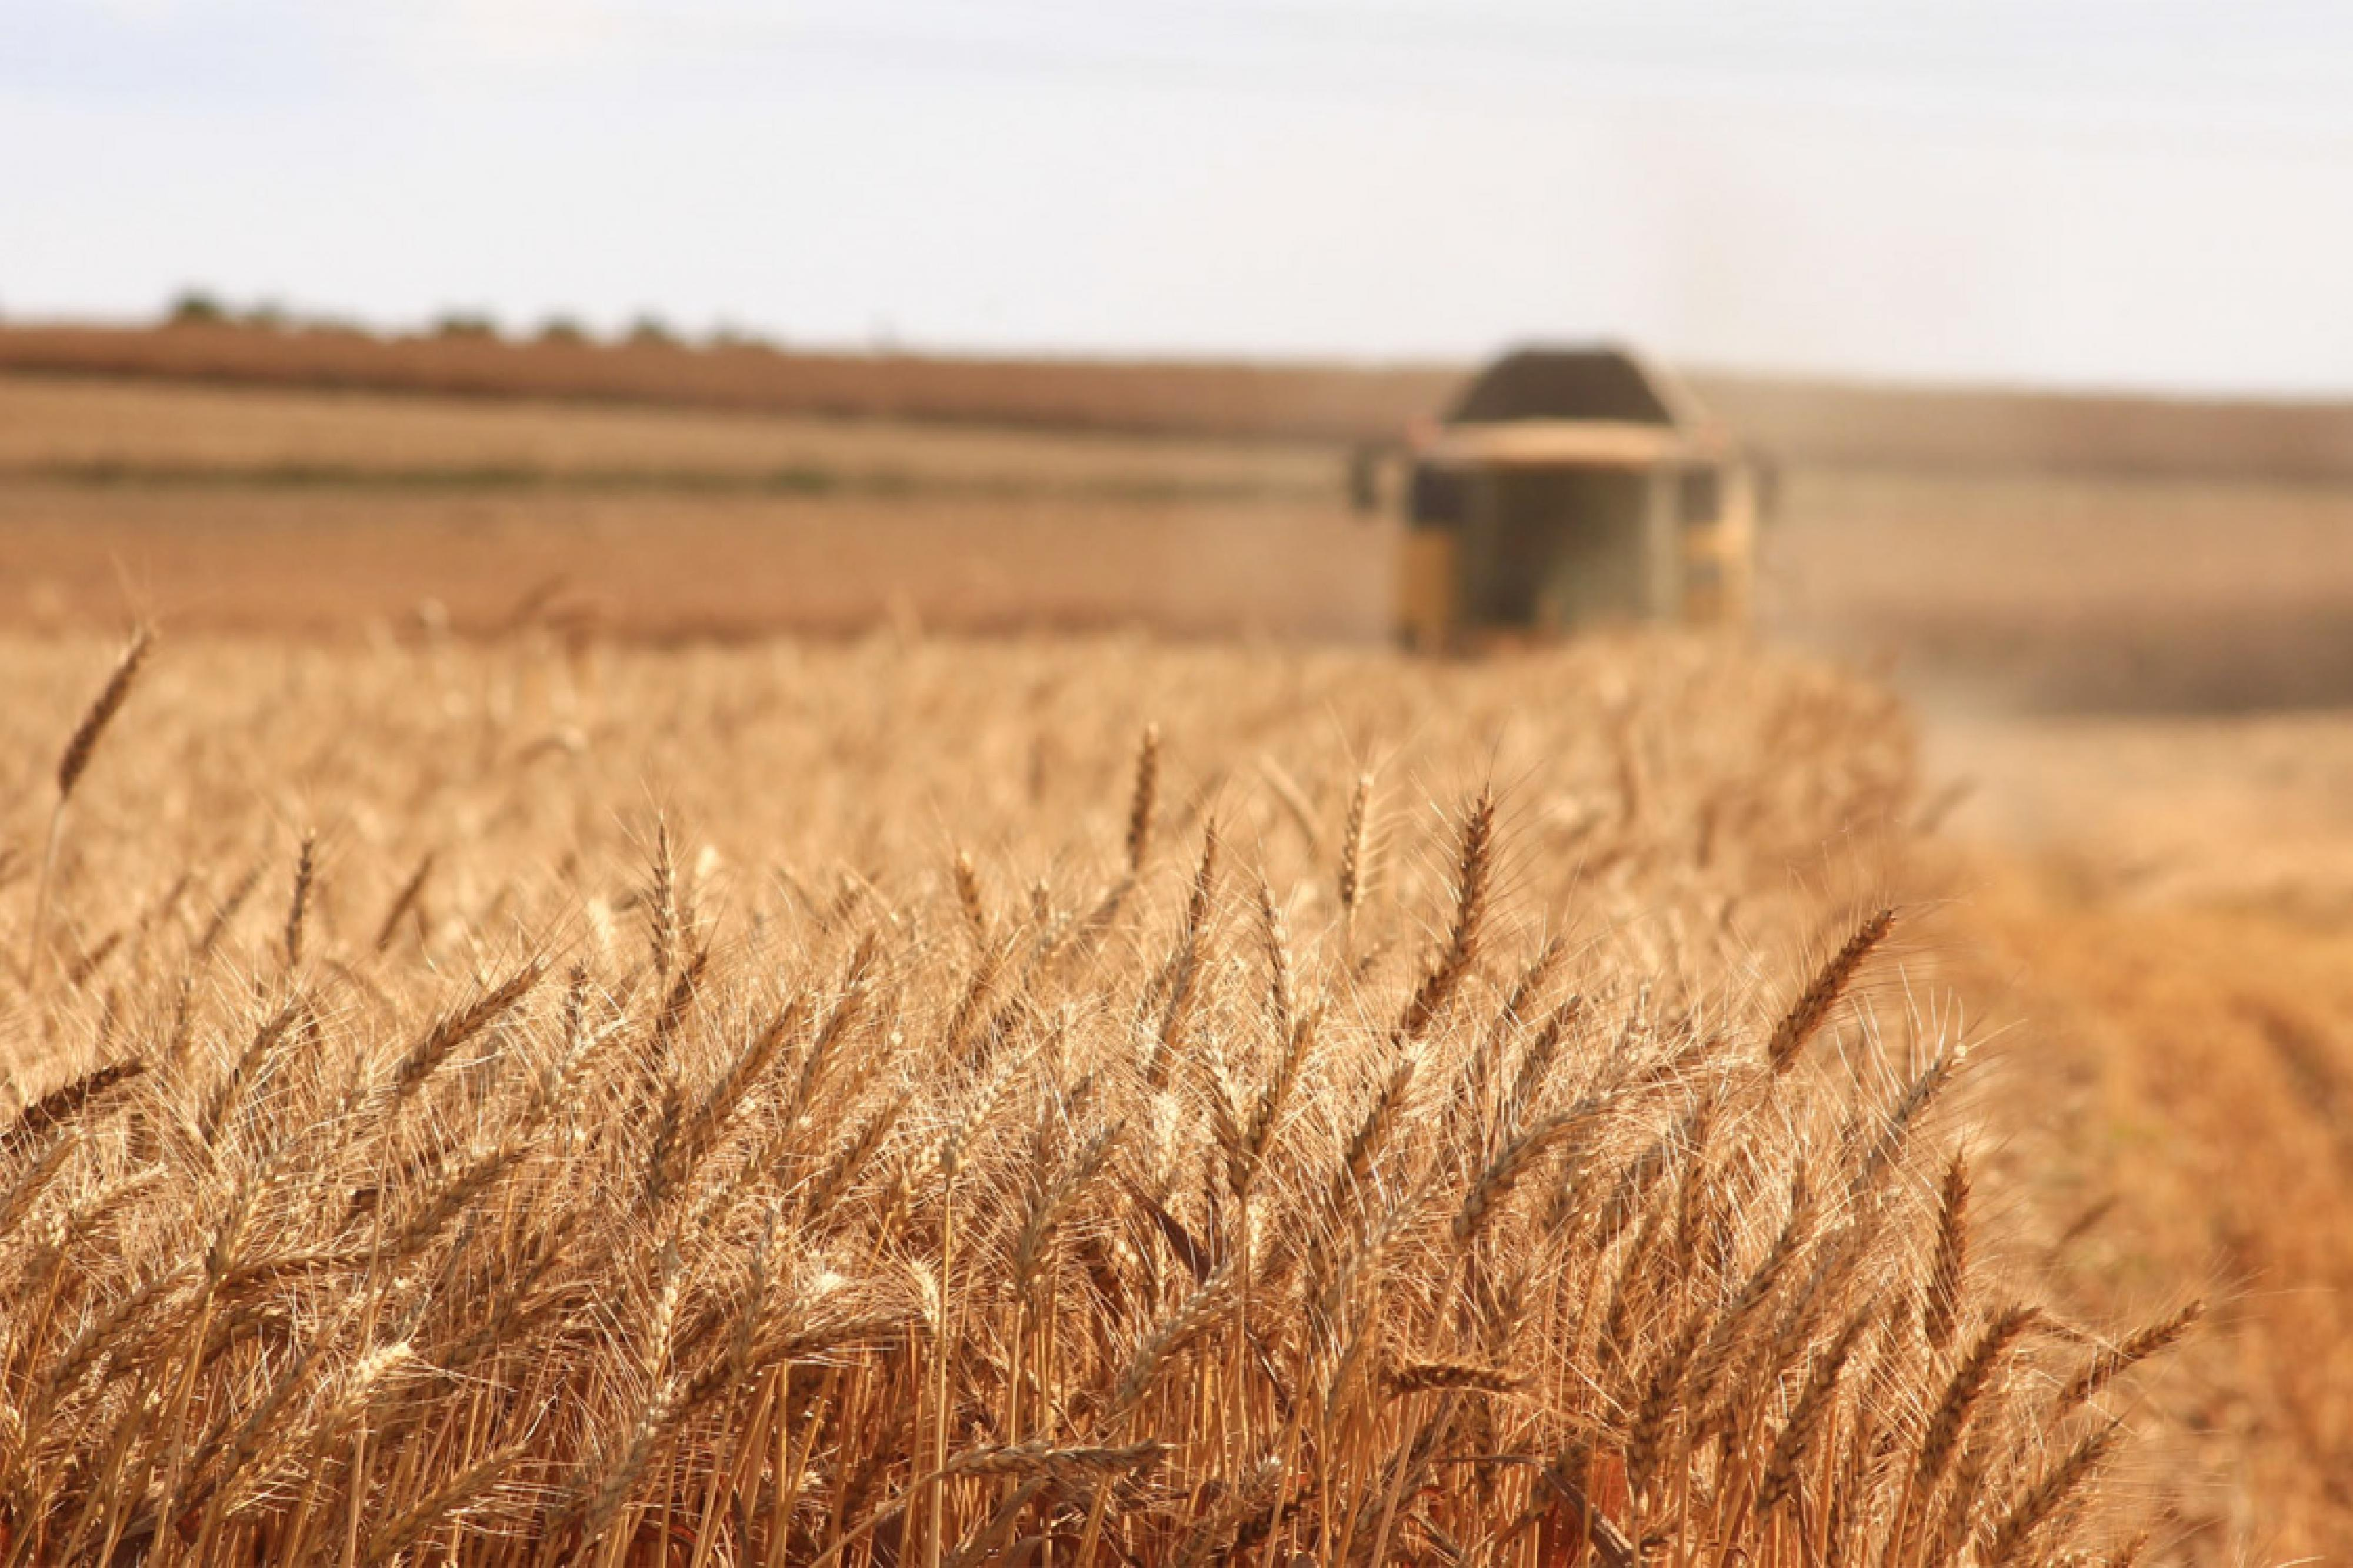 Tractor harvests wheat from field